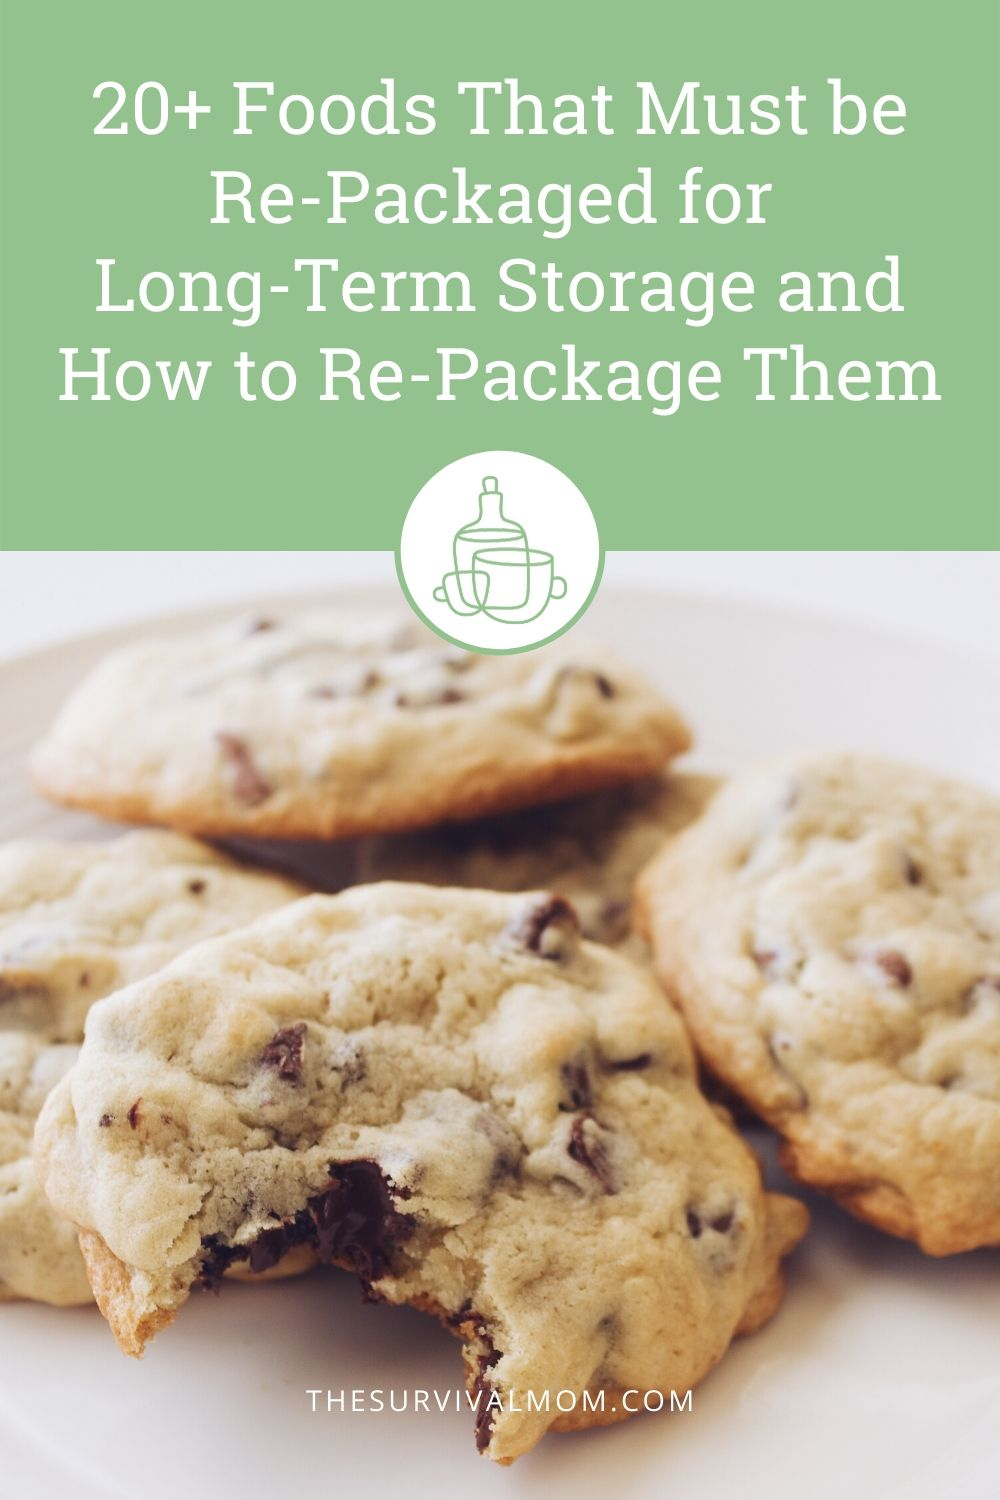 20+ Foods that must be re-packaged for long-term storage and how to repackage them via The Survival Mom